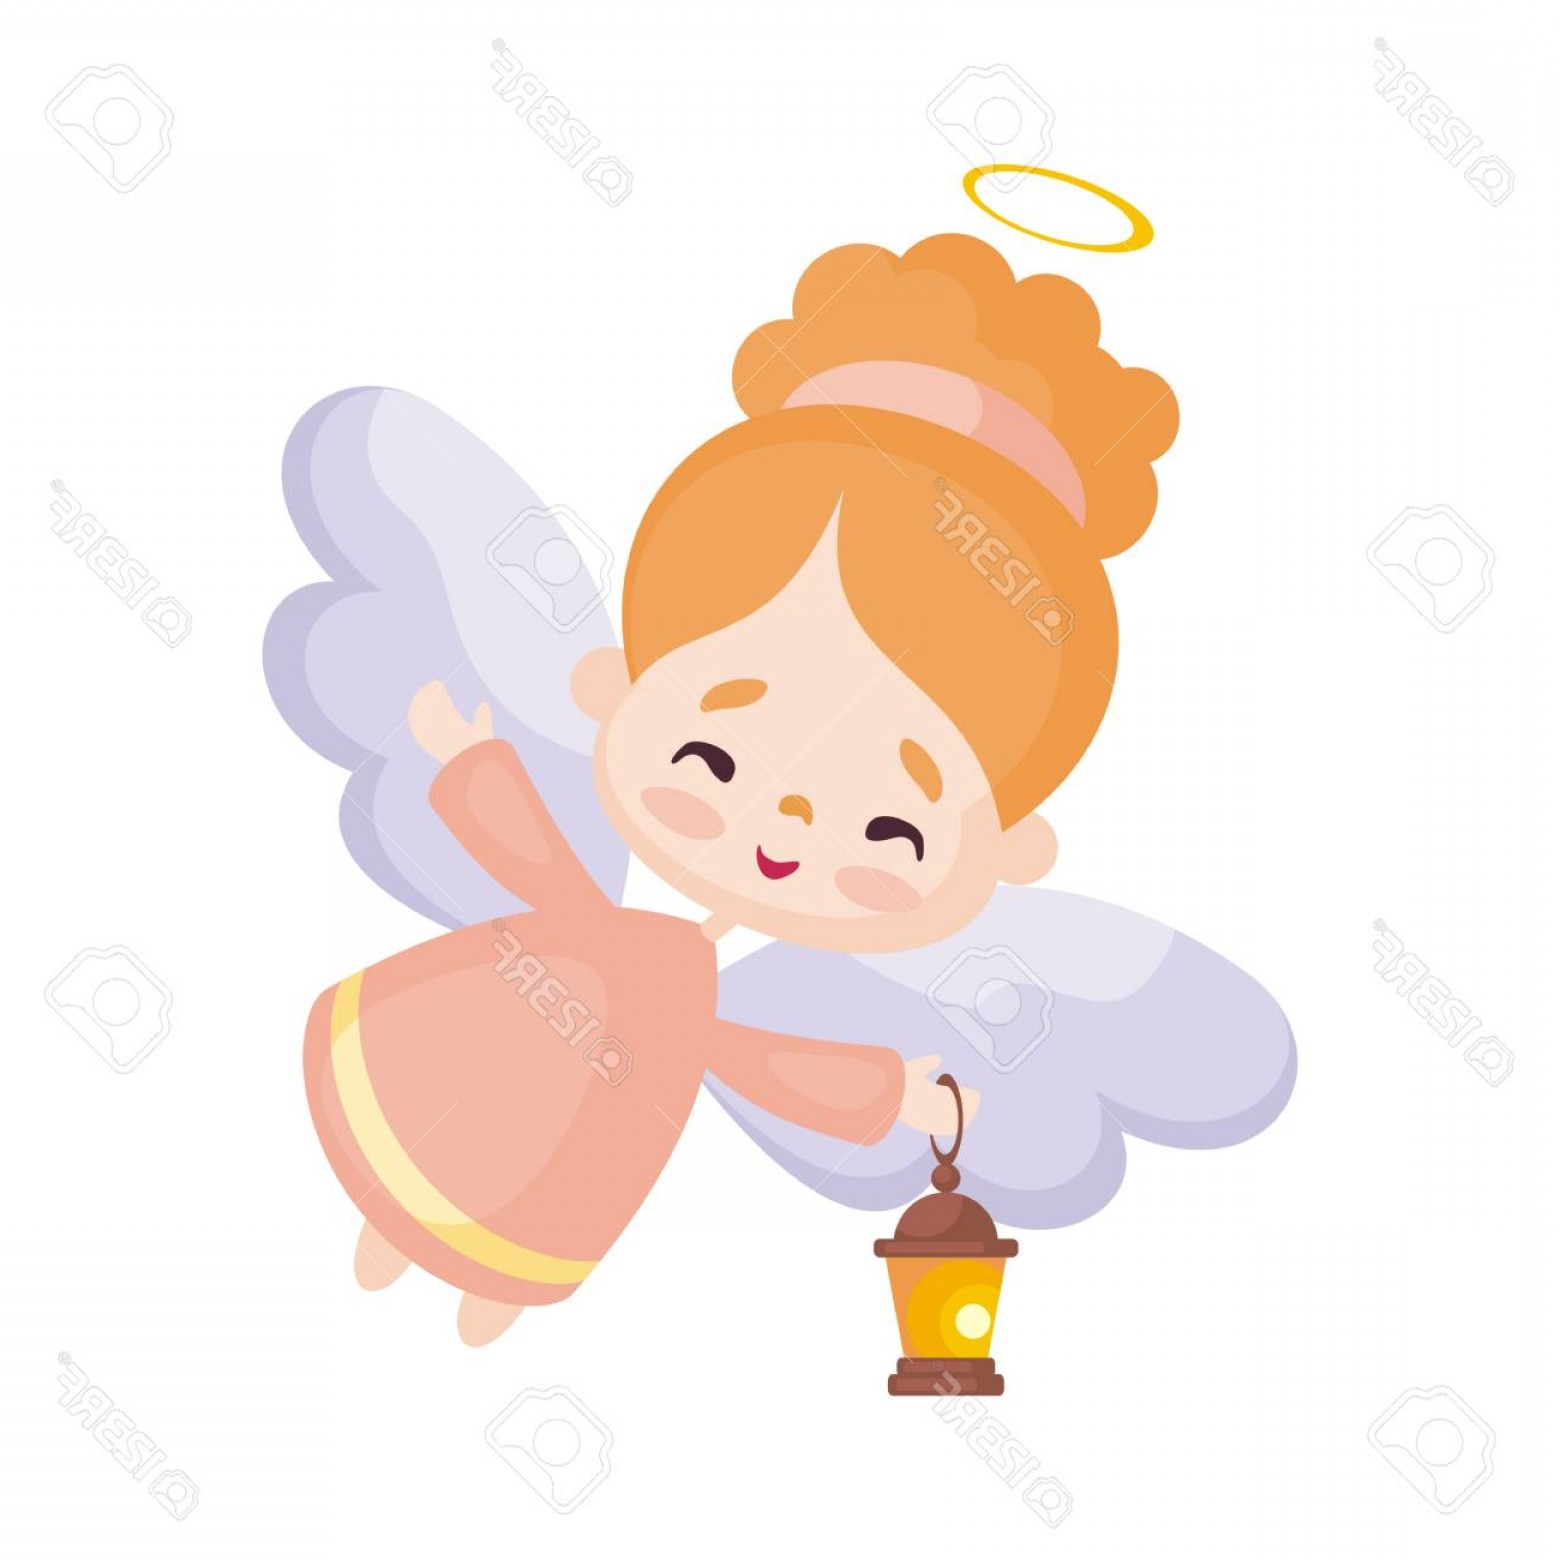 Little Angel Vector: Photostock Vector Colorful Image Of A Pretty Little Angel Vector Illustration On A White Background